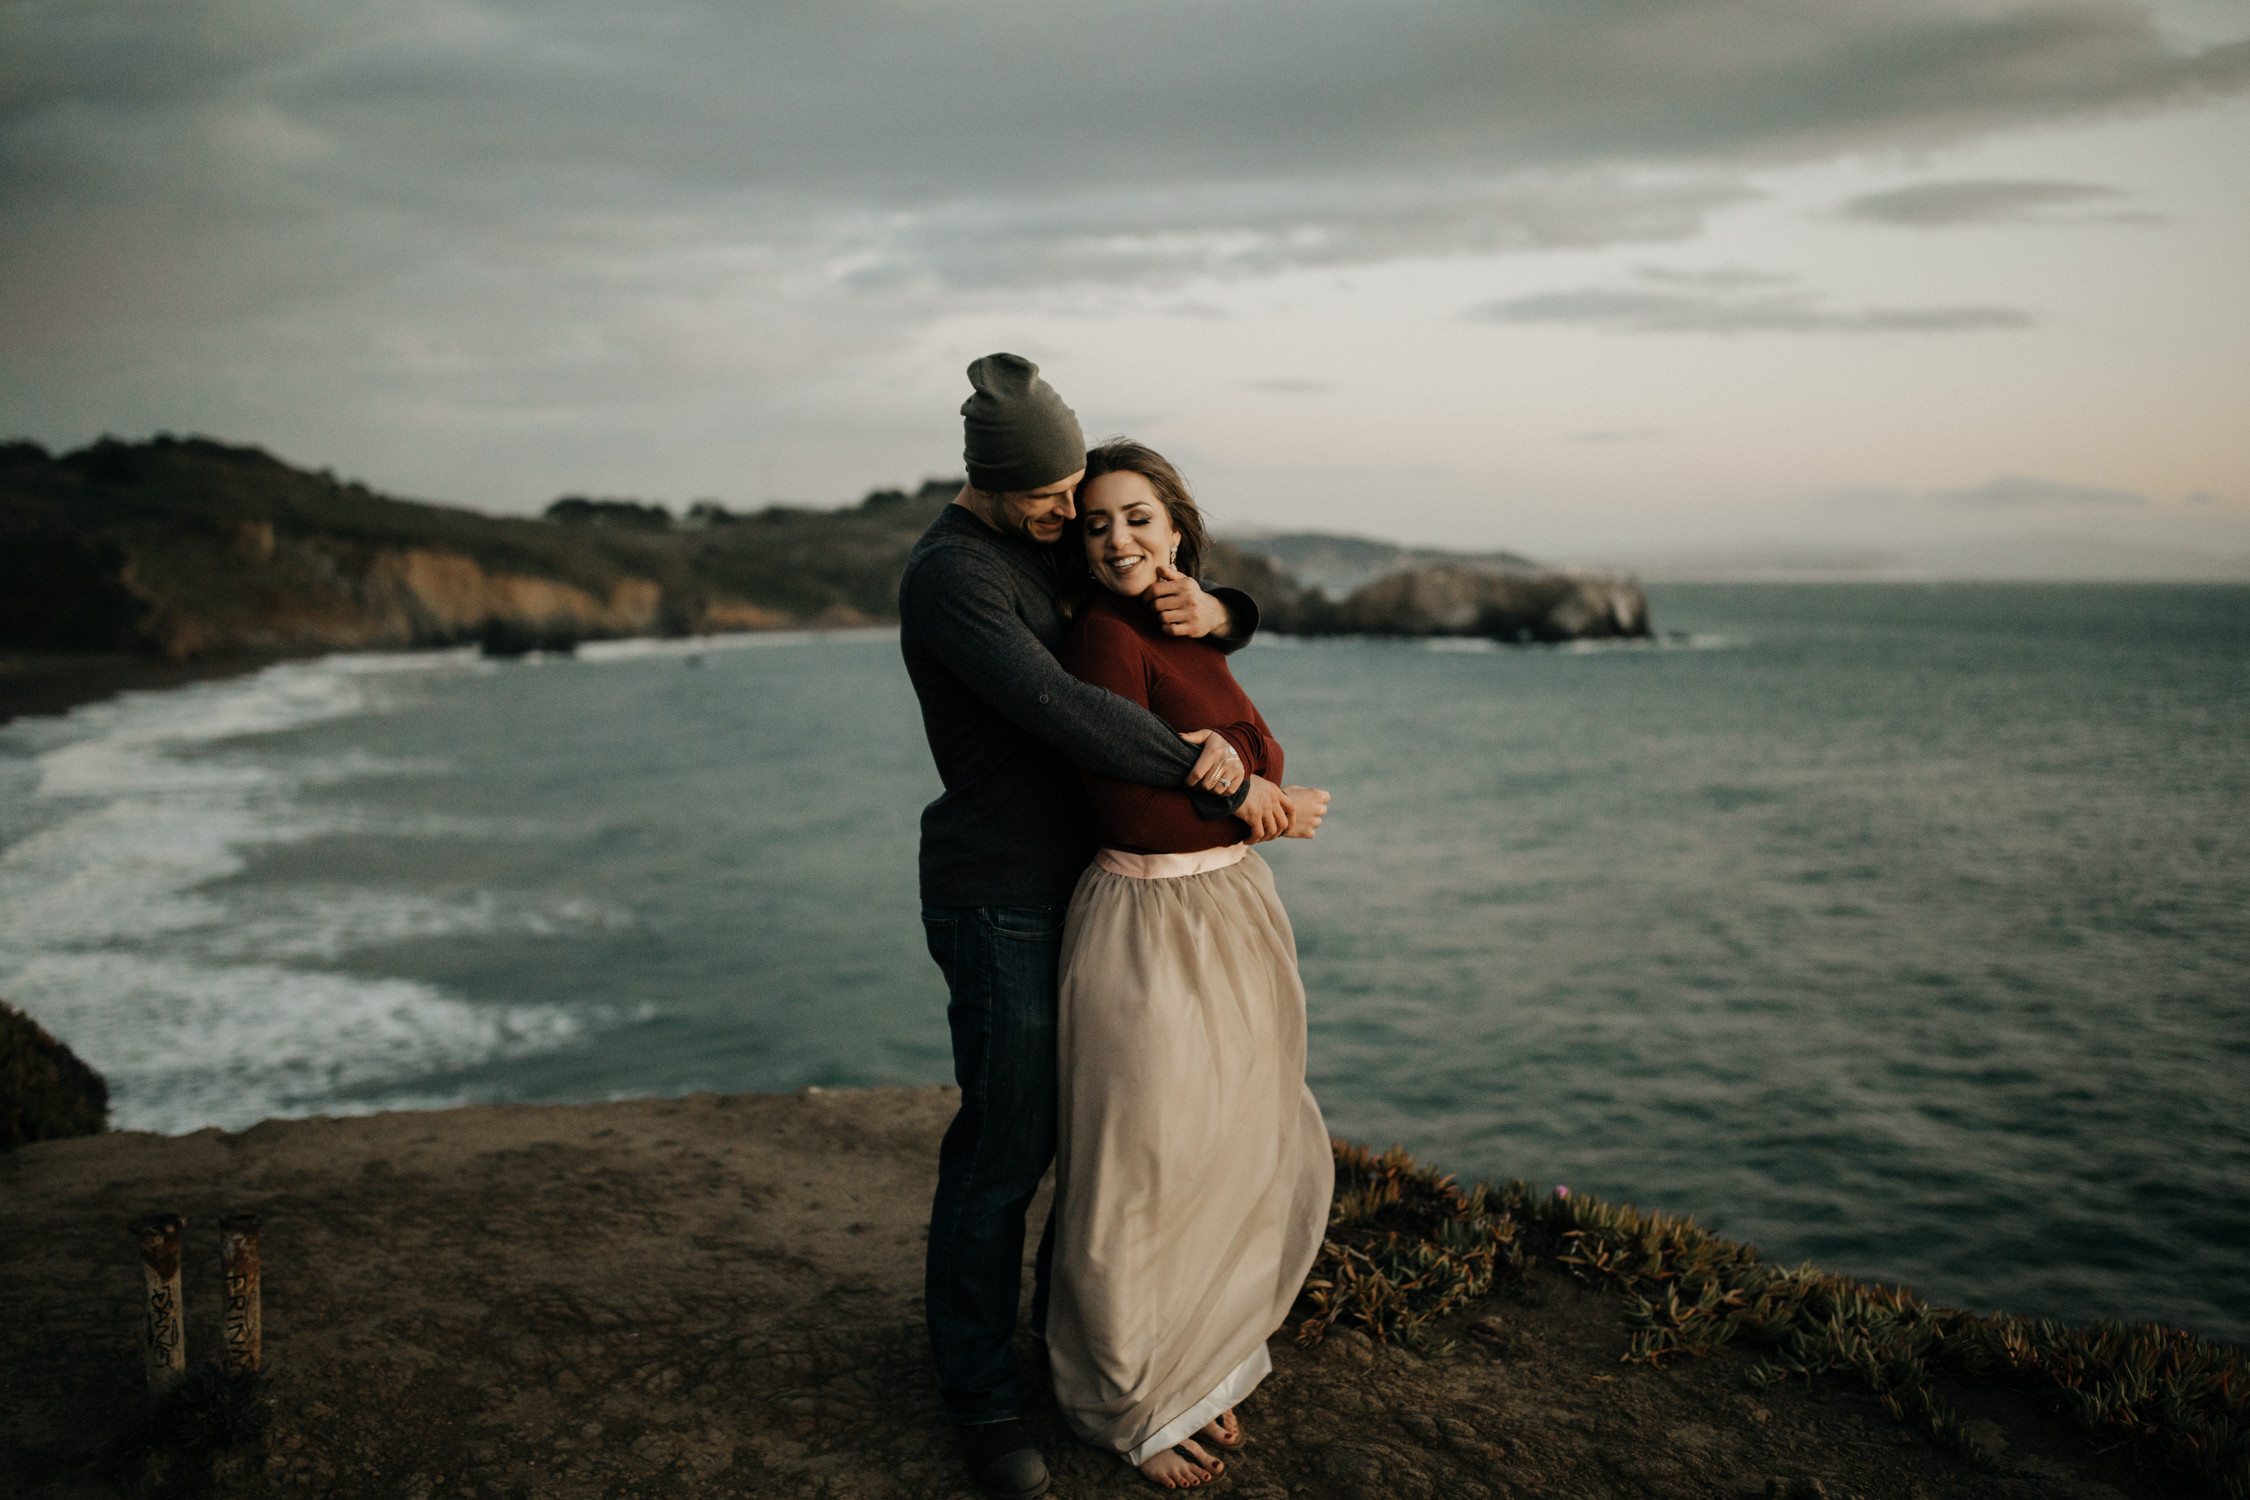 couple-intimate-engagement-session-sausalito-california-62.jpg